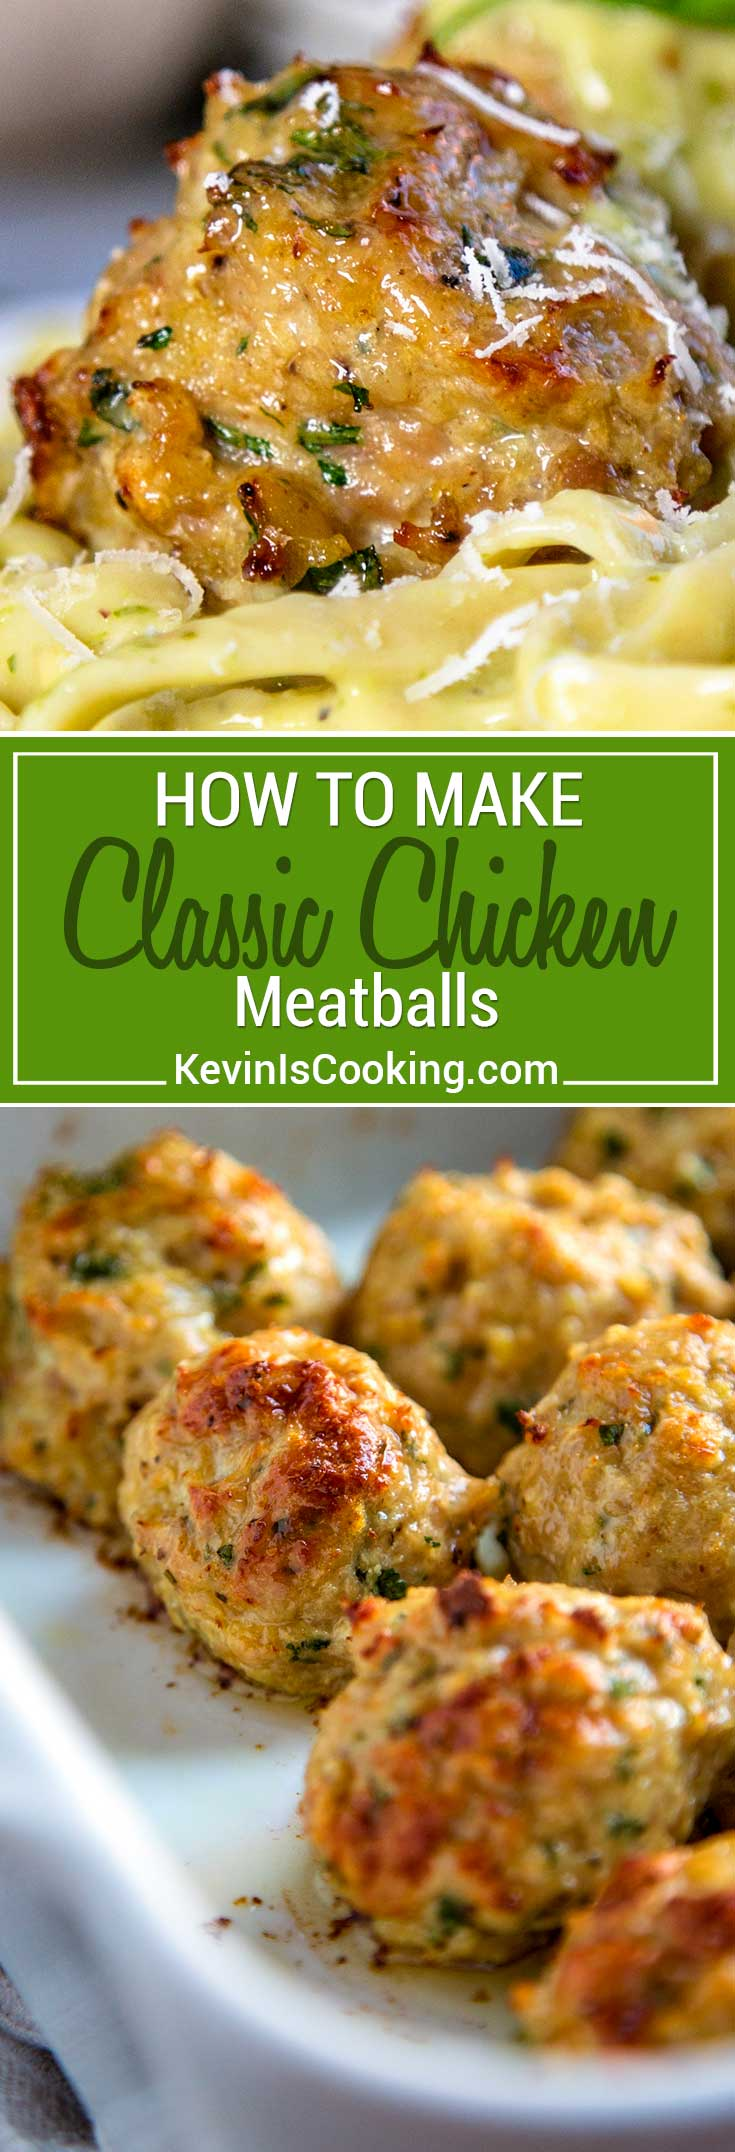 For me Classic Chicken Meatballs need to be moist, flavorful and not too dense. In these roasted chicken meatballs I keep the ingredients few, just enough to hold the chicken mixture together, and the herbs and spices of parsley, fennel, and celery salt light.